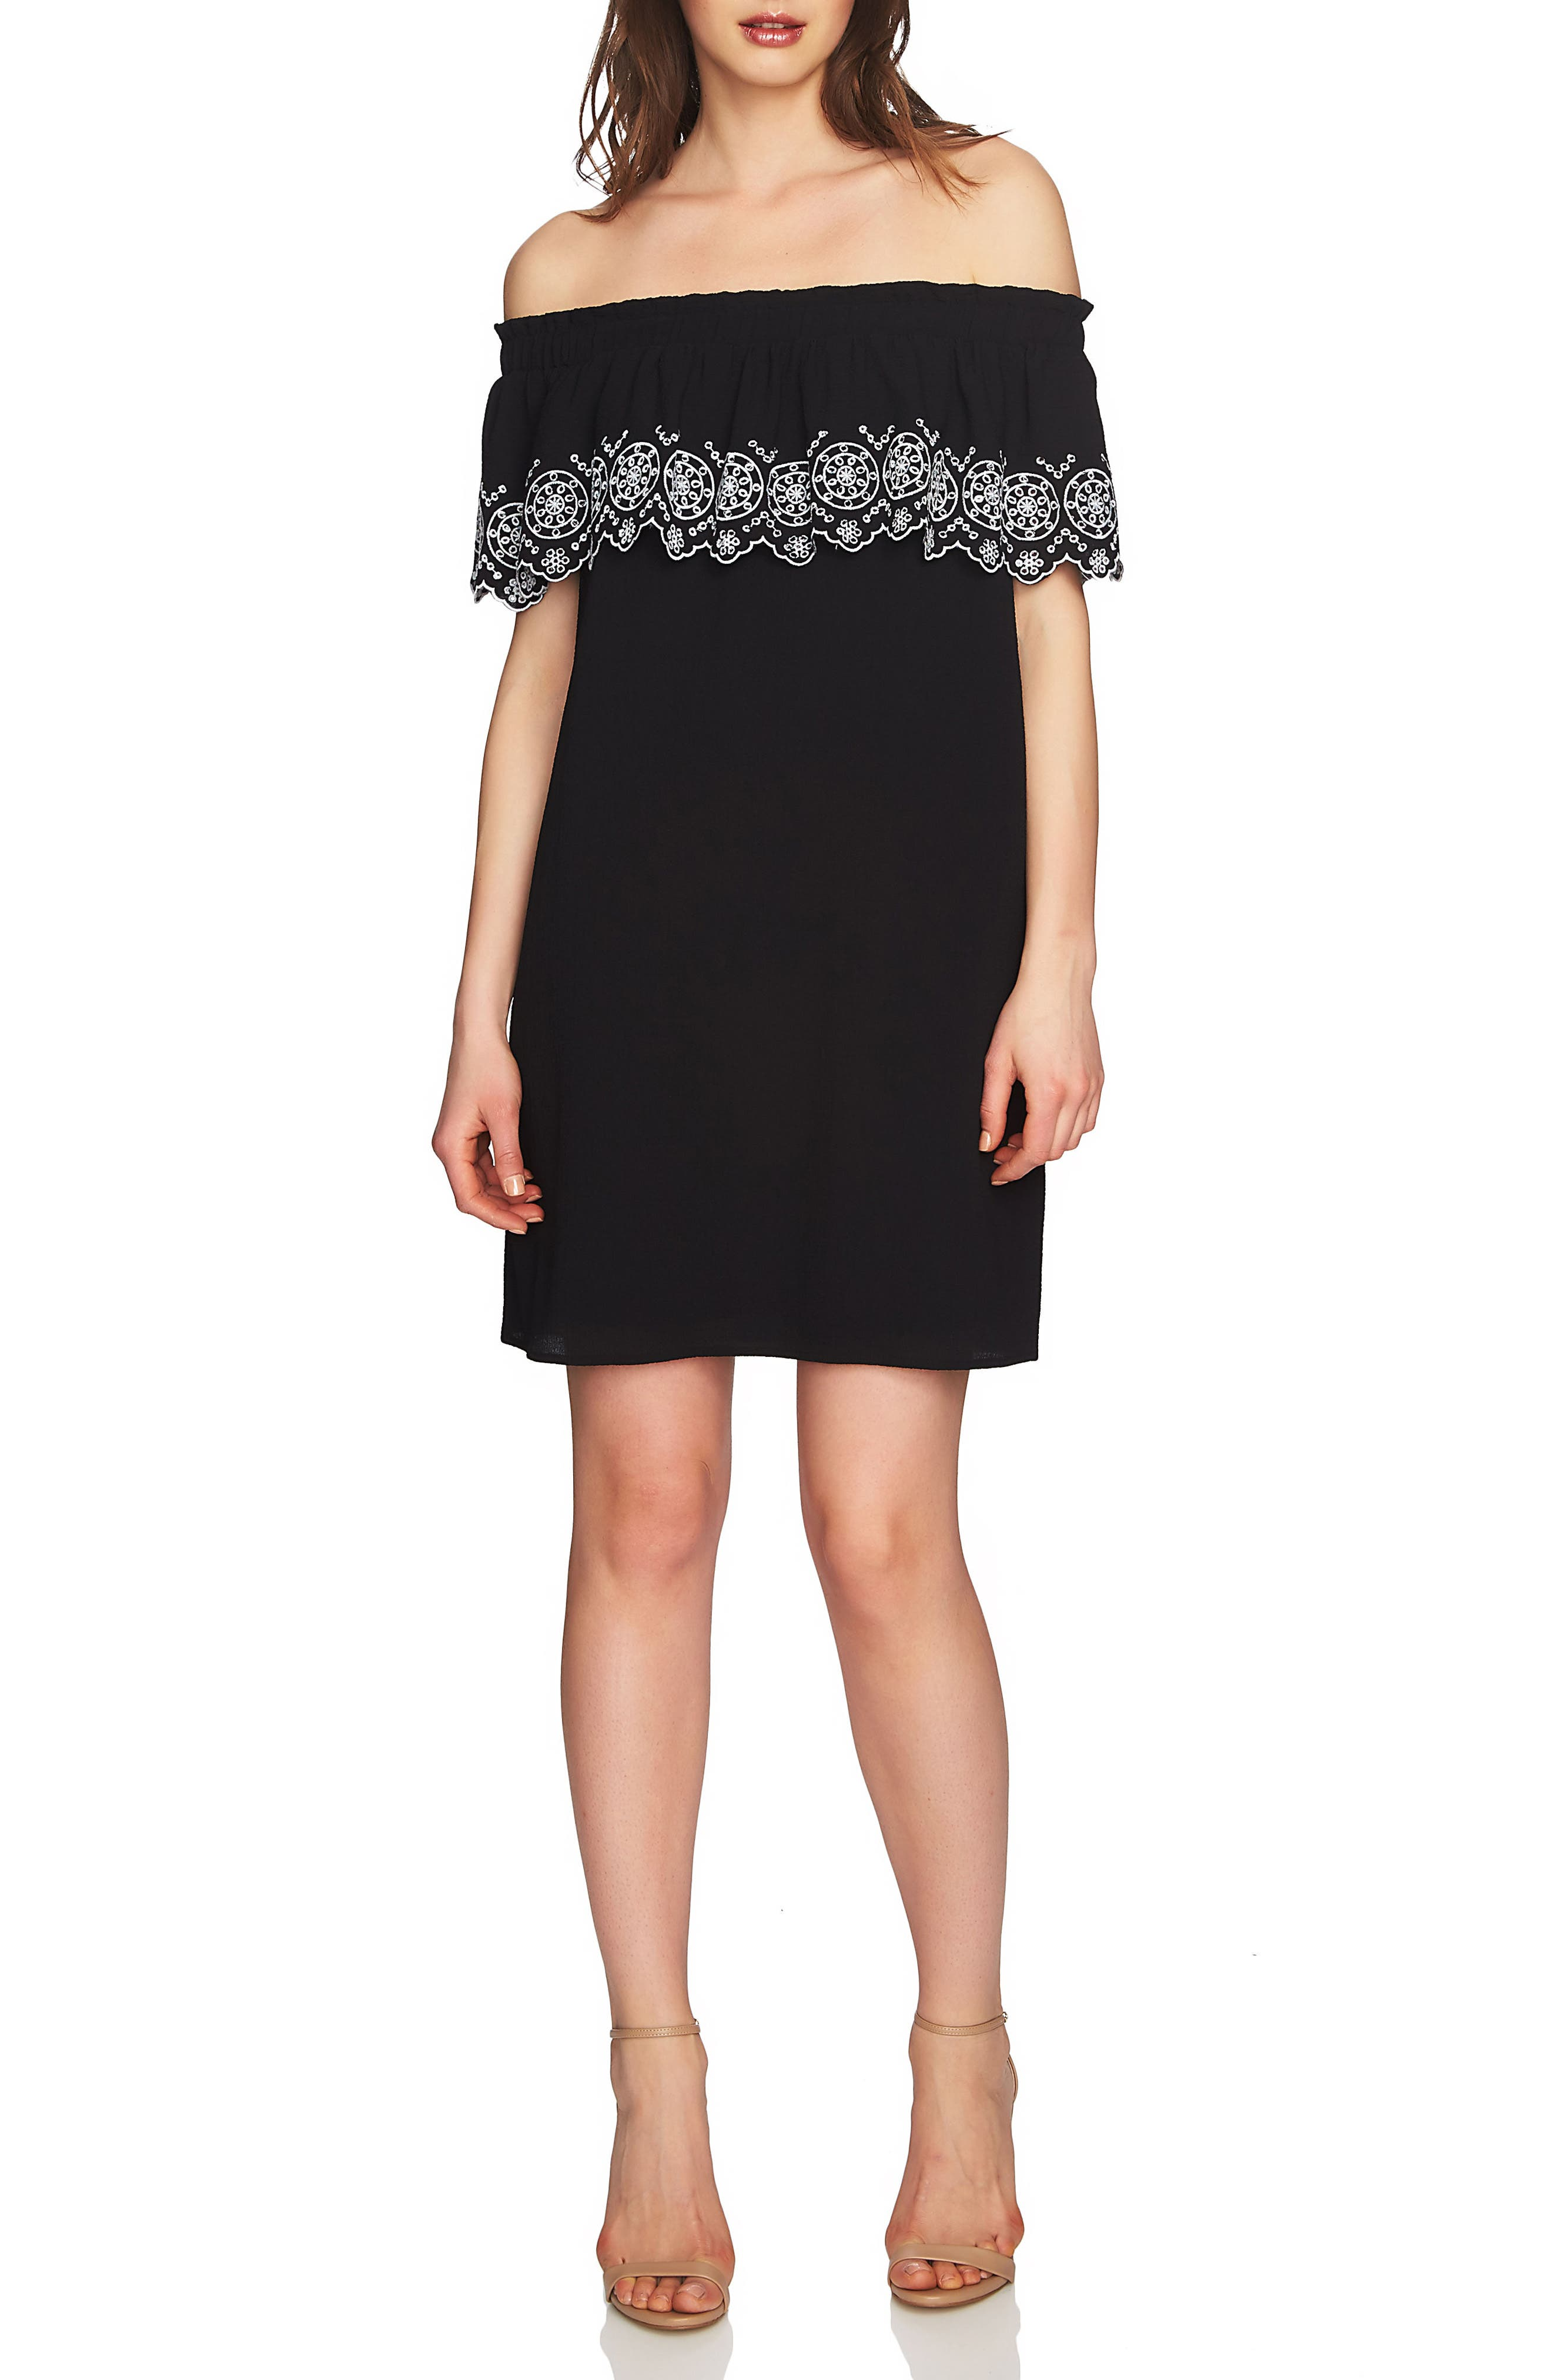 Tenley Off the Shoulder Embroidered Dress,                             Main thumbnail 1, color,                             Rich Black